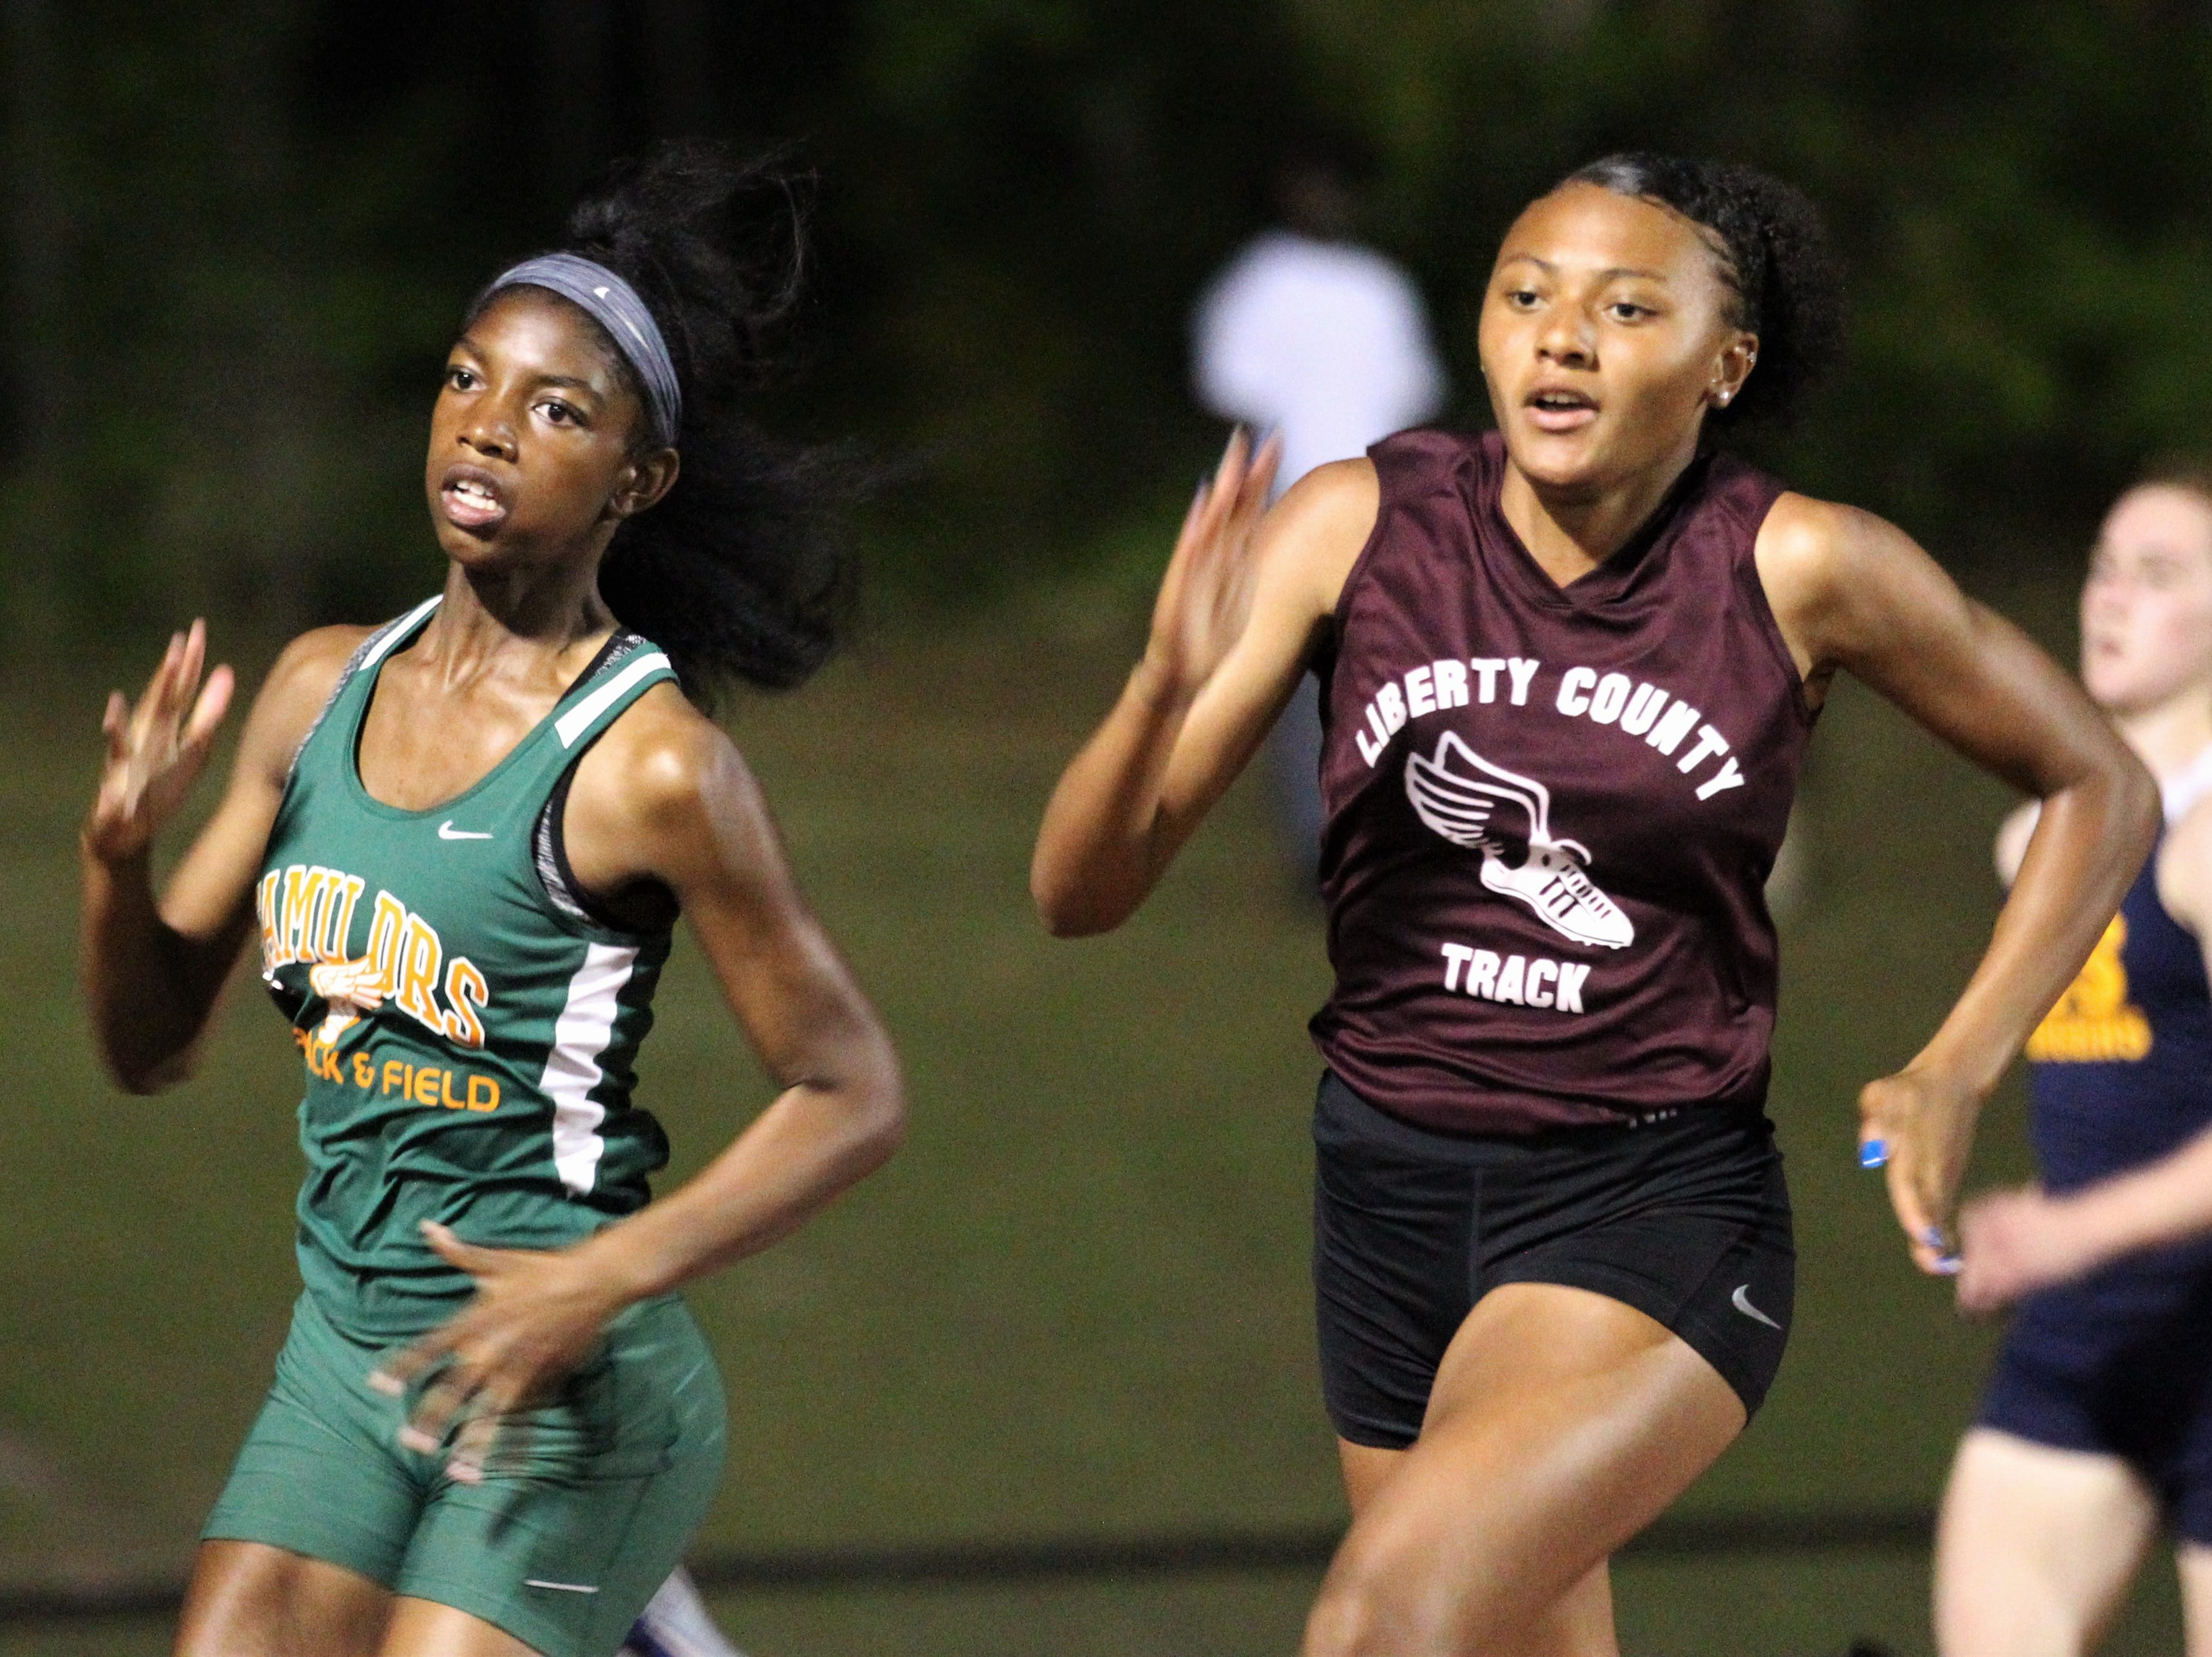 FAMU DRS sophomore Sanna Crumiel races during the District 3-1A and 2-2A track and field meets at Florida High on Saturday, April 13, 2019.